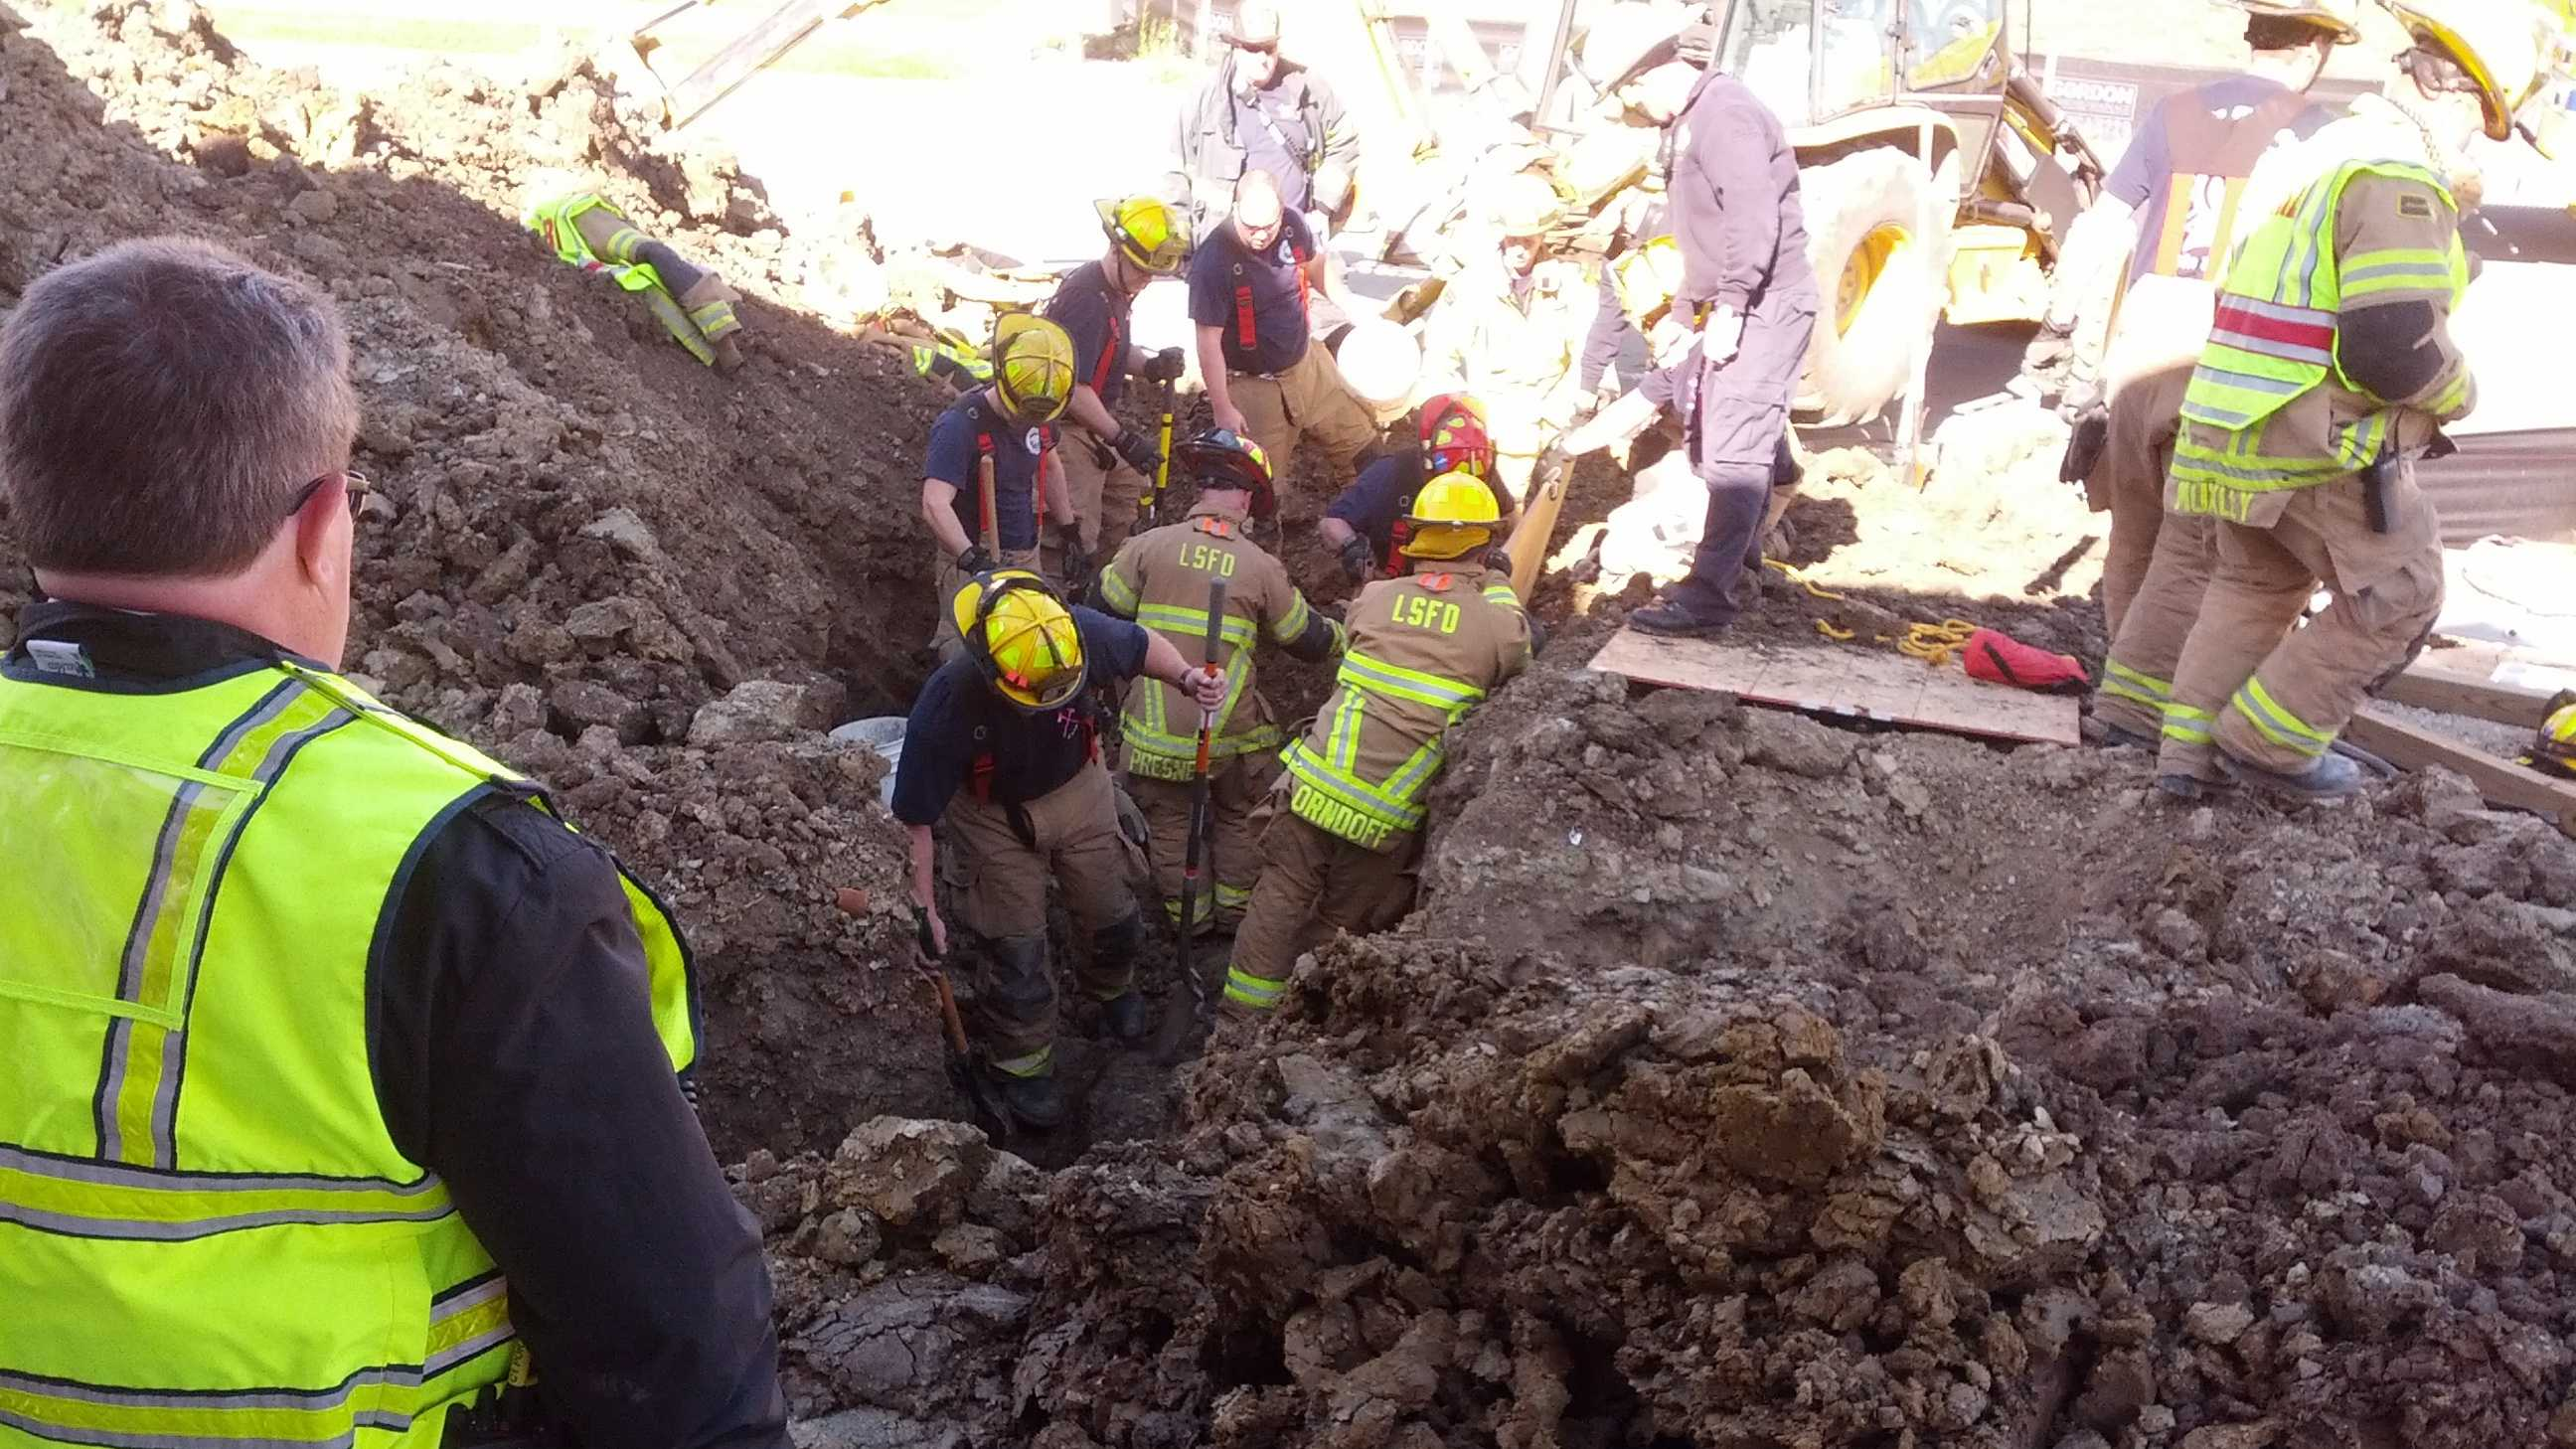 Lee's Summit trench rescue image 17